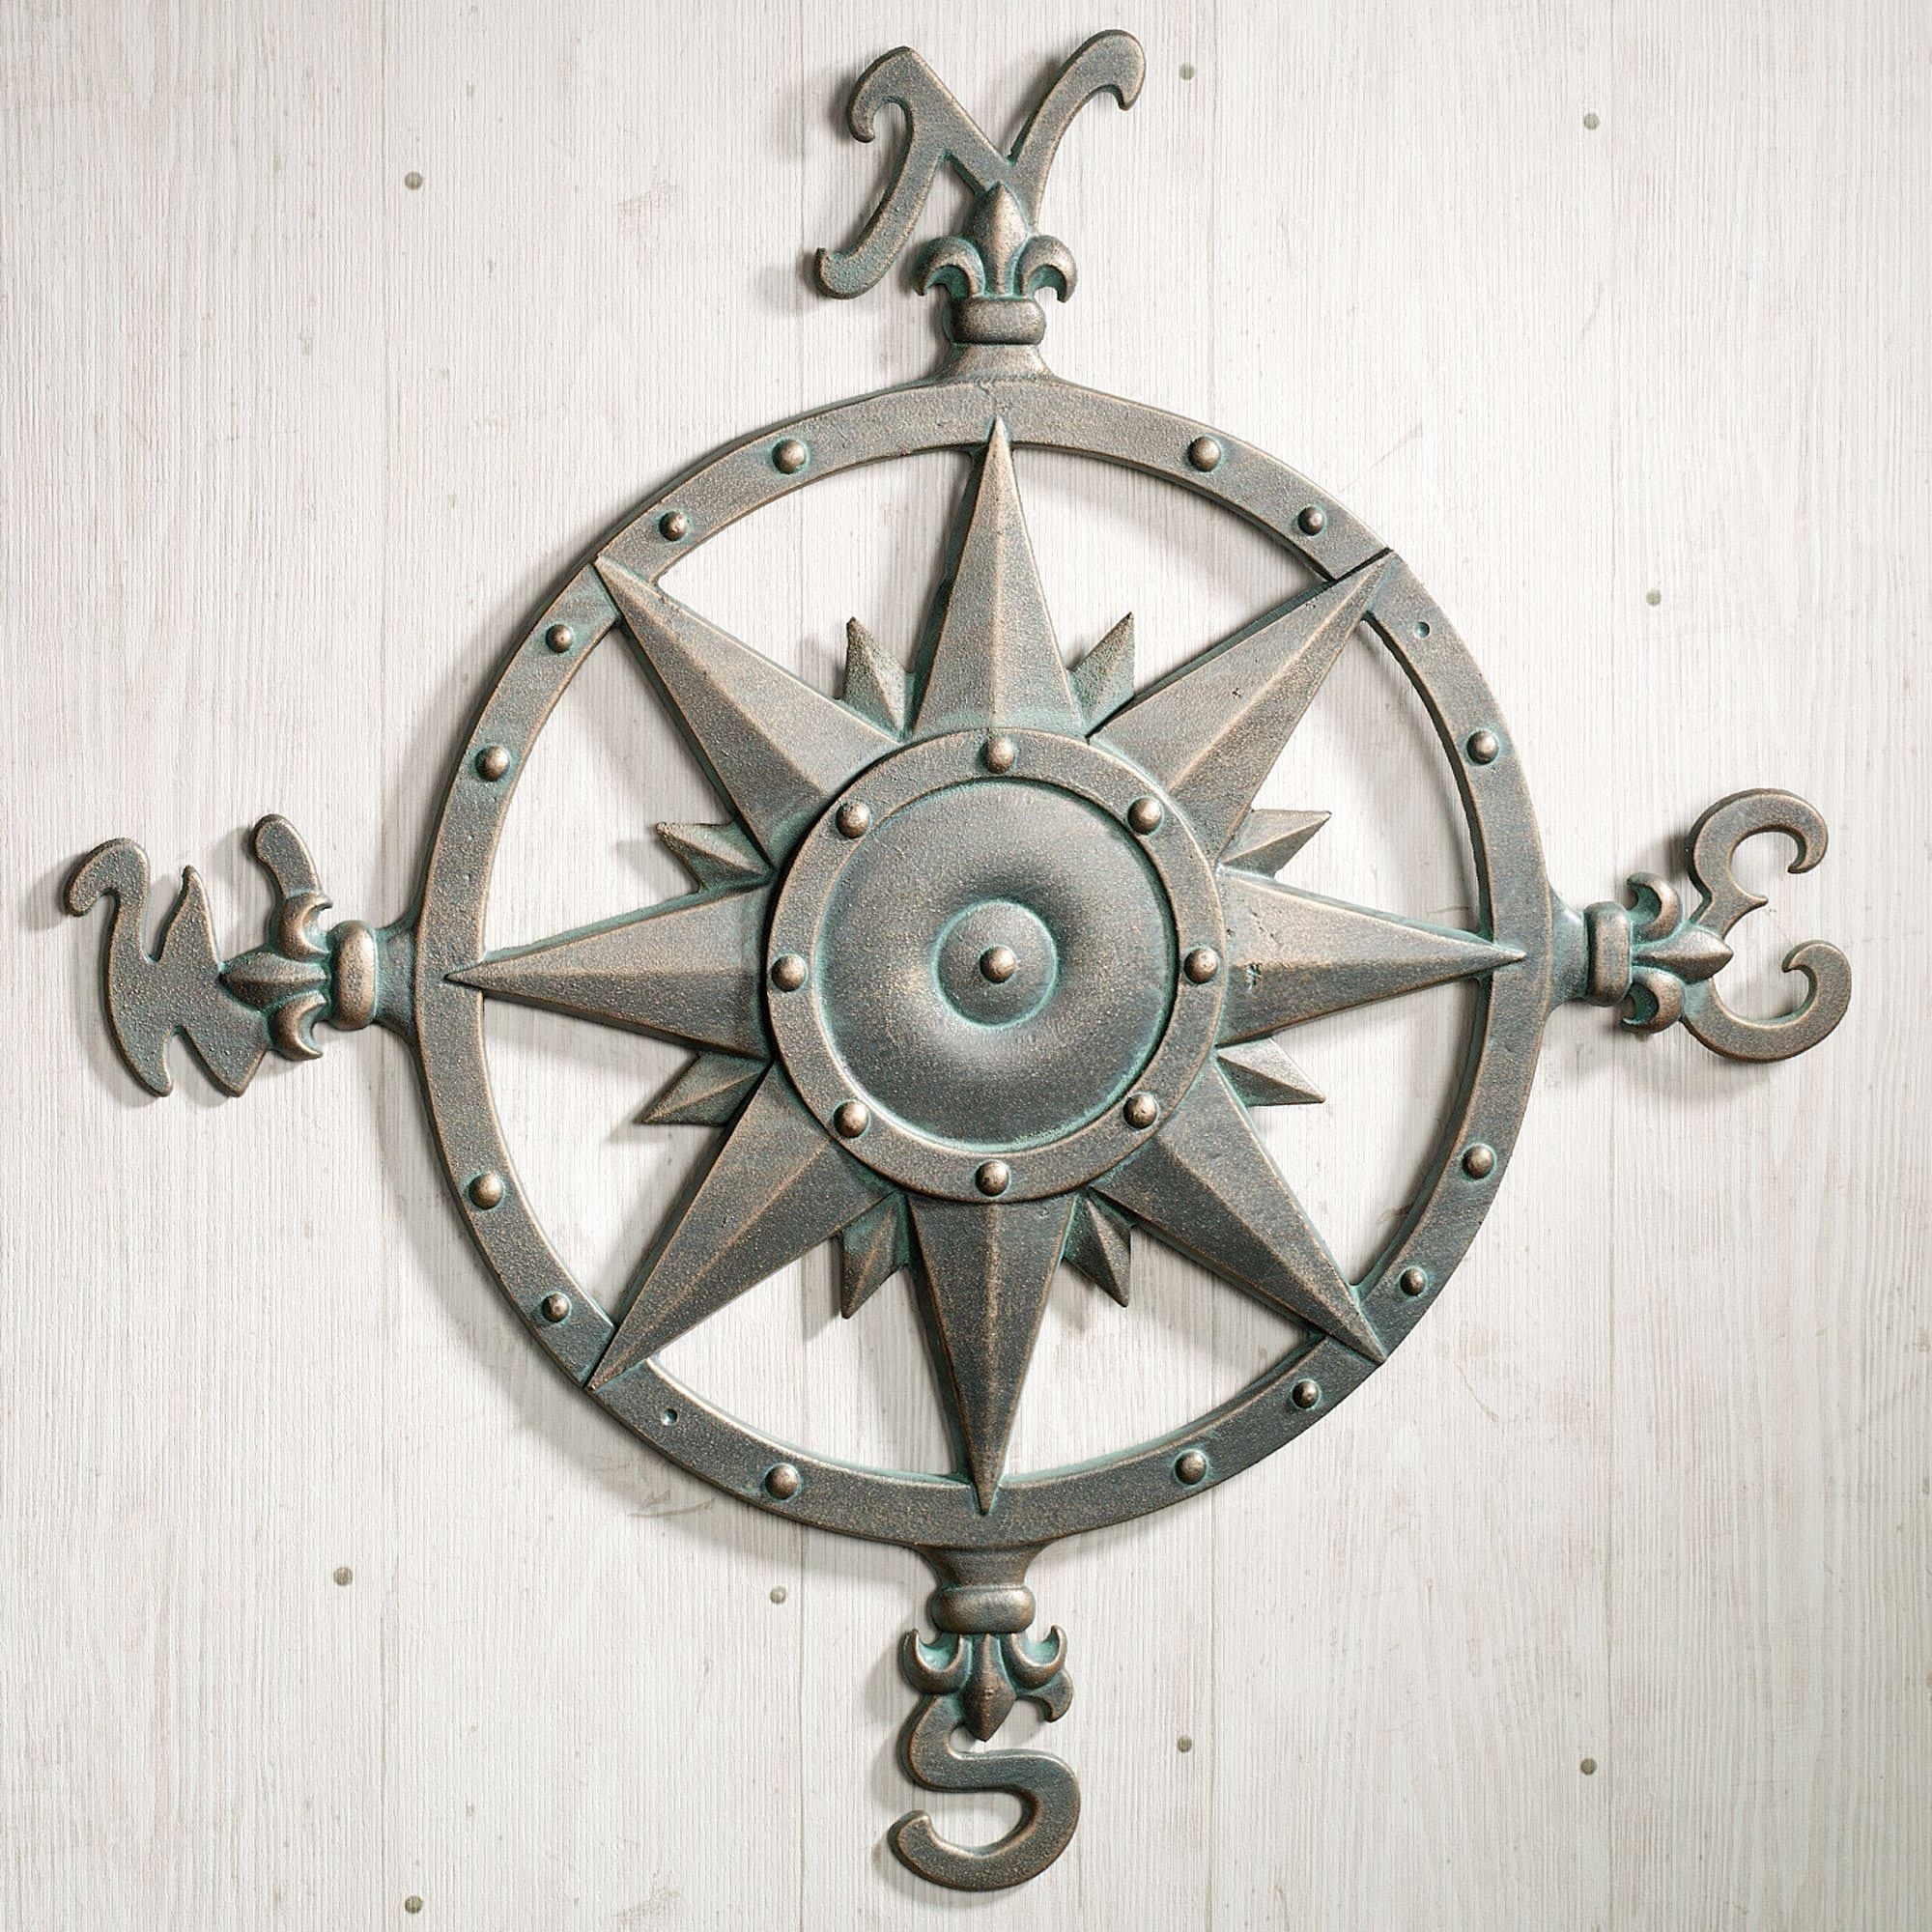 Decor : 69 Outdoor Outdoor Wall Art Indoor Outdoor Nautical In Decorative Outdoor Metal Wall Art (View 19 of 20)